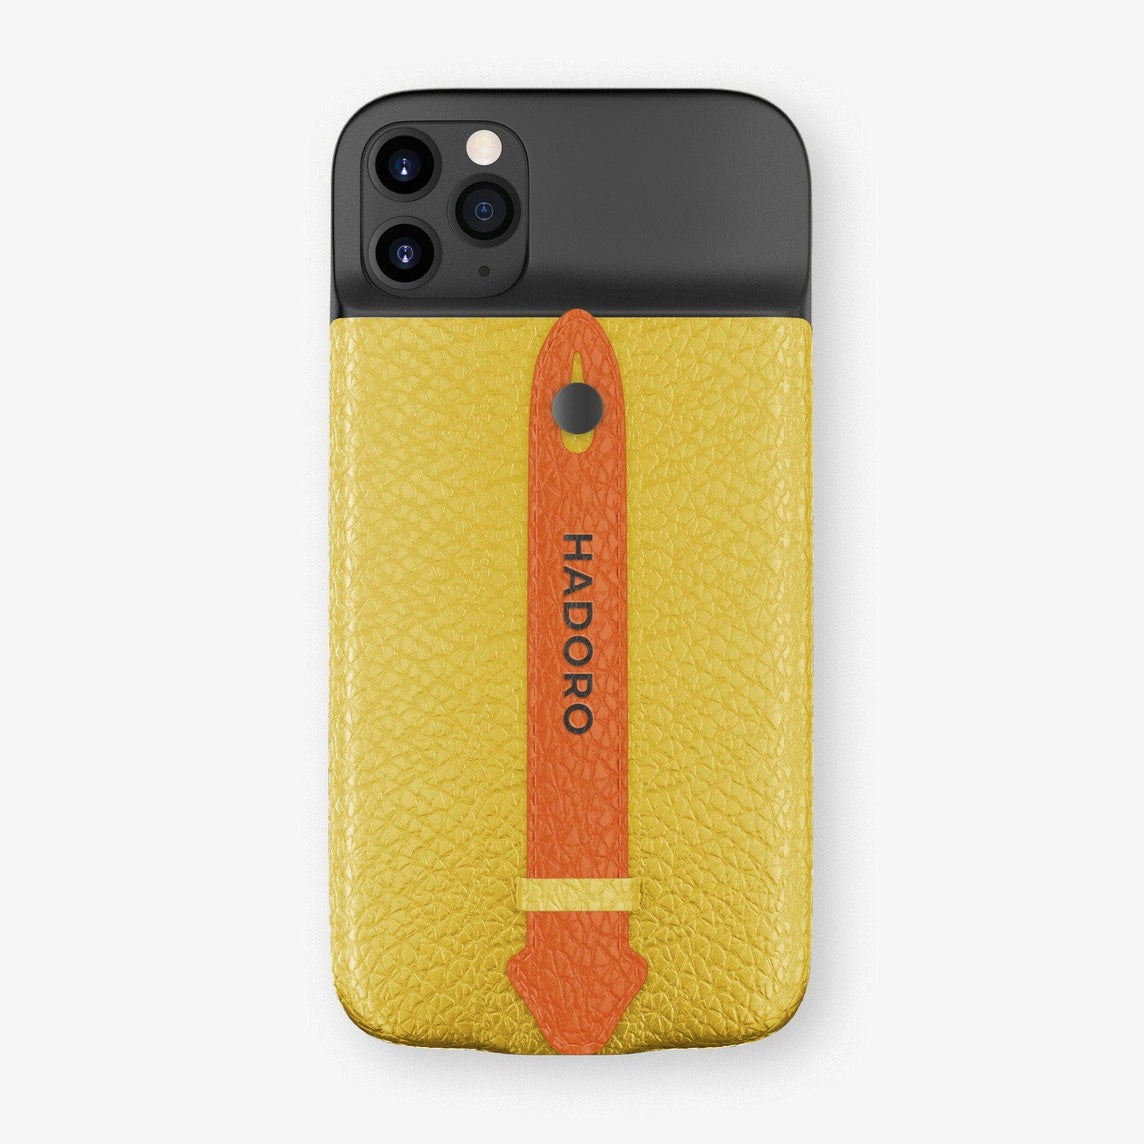 Calfskin Battery Finger Case for iPhone 11 Pro Max | Yellow/Orange - Black without-personalization